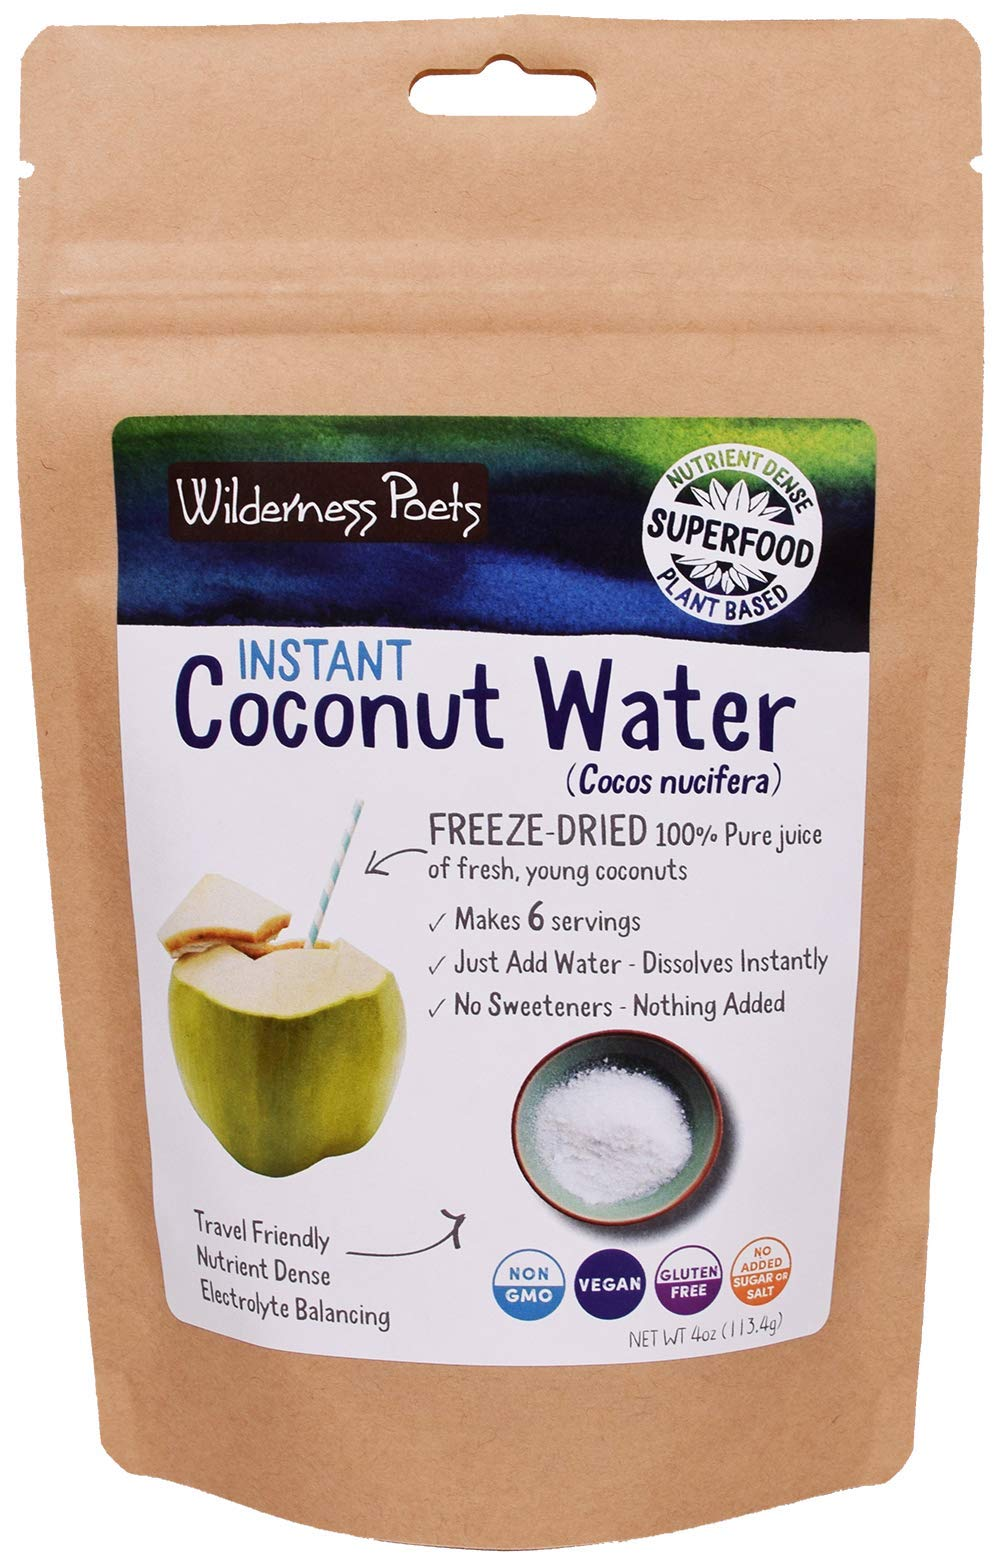 Wilderness Poets Coconut Water Powder - Freeze Dried - Instant Mix (4 Ounce)